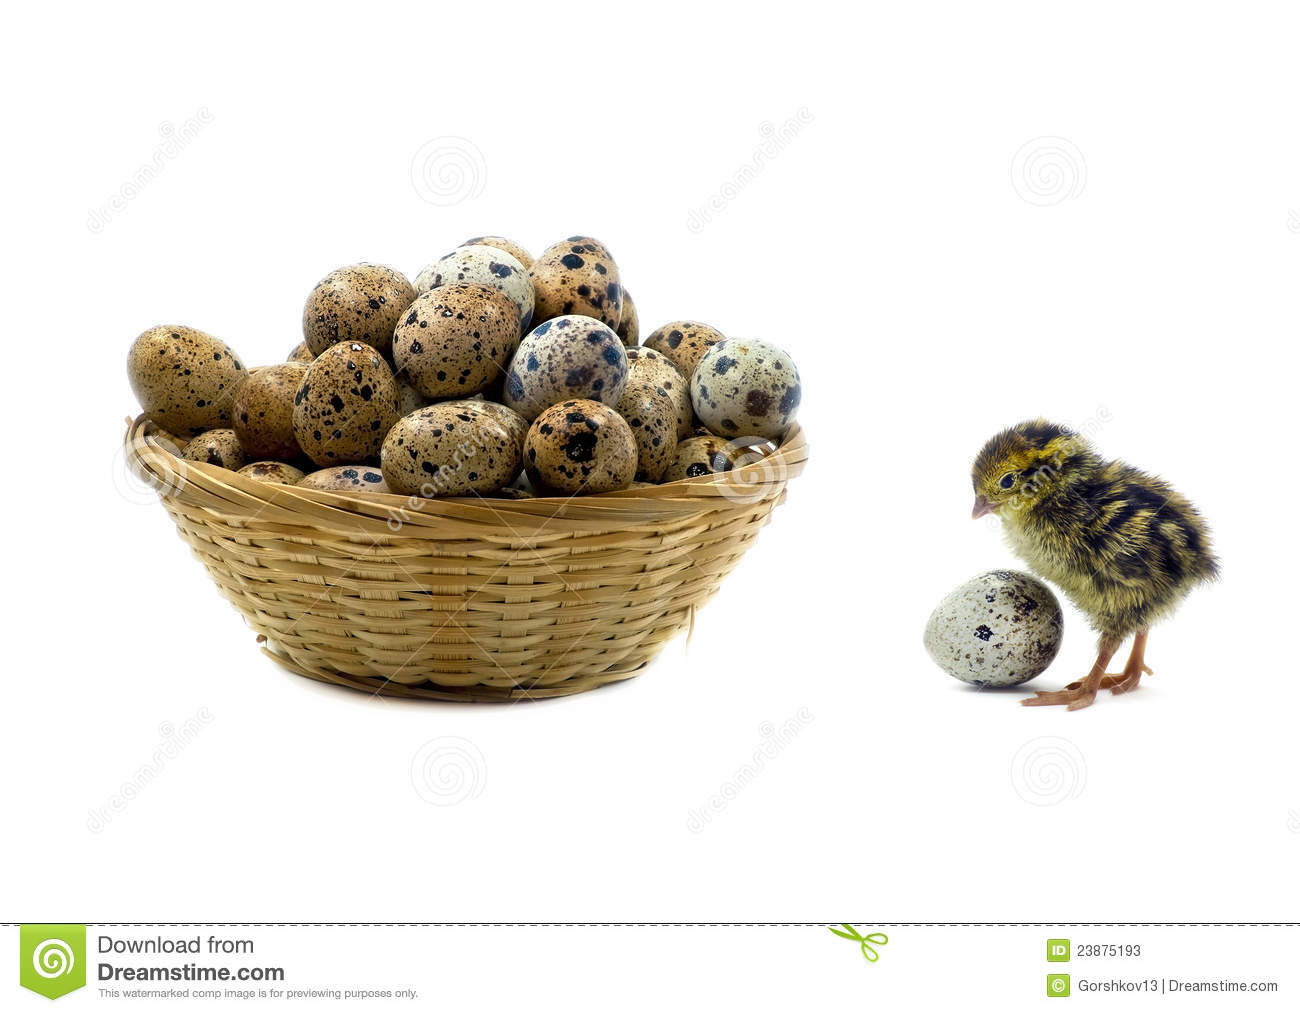 Nestling quail is waiting for siblings